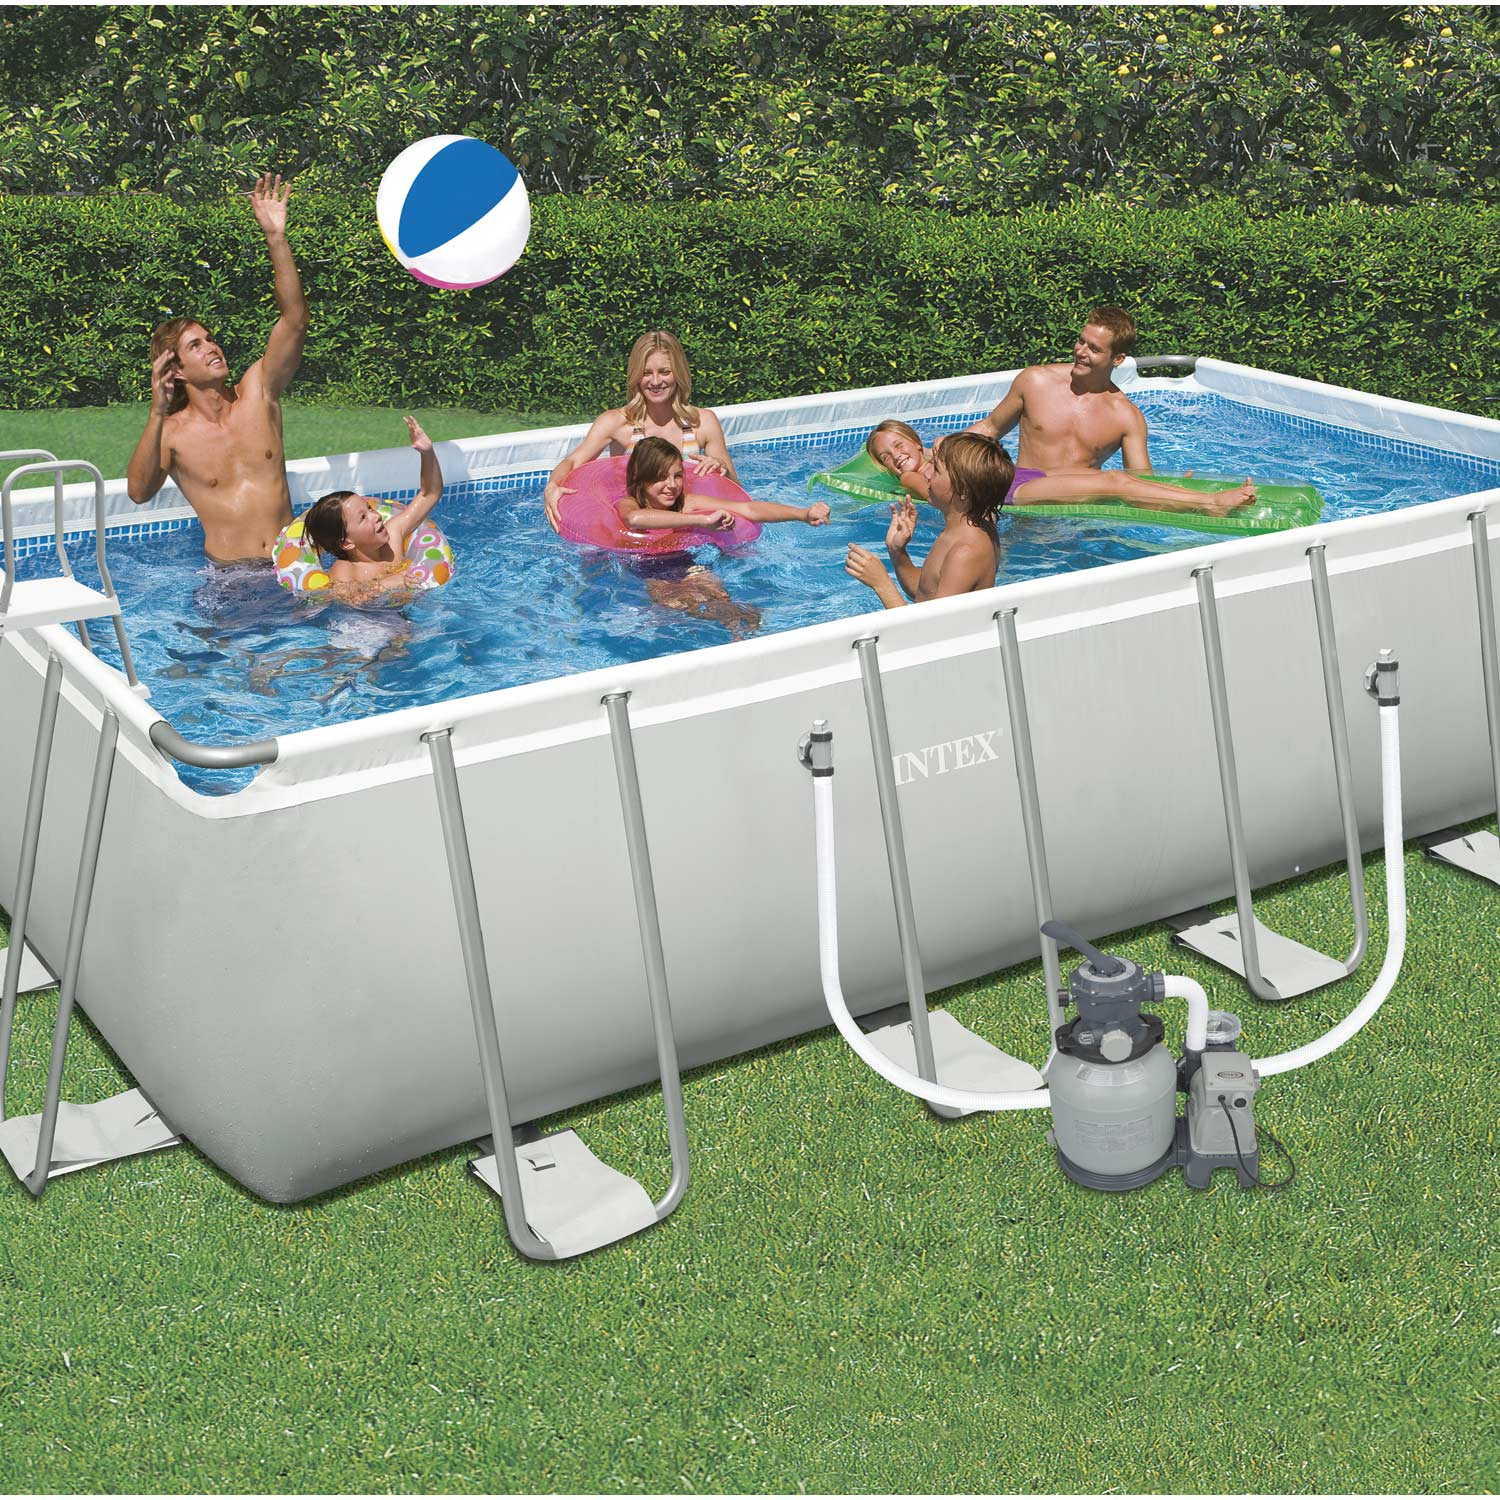 Piscine hors sol autoportante tubulaire ultra silver intex for Chauffage piscine hors sol intex